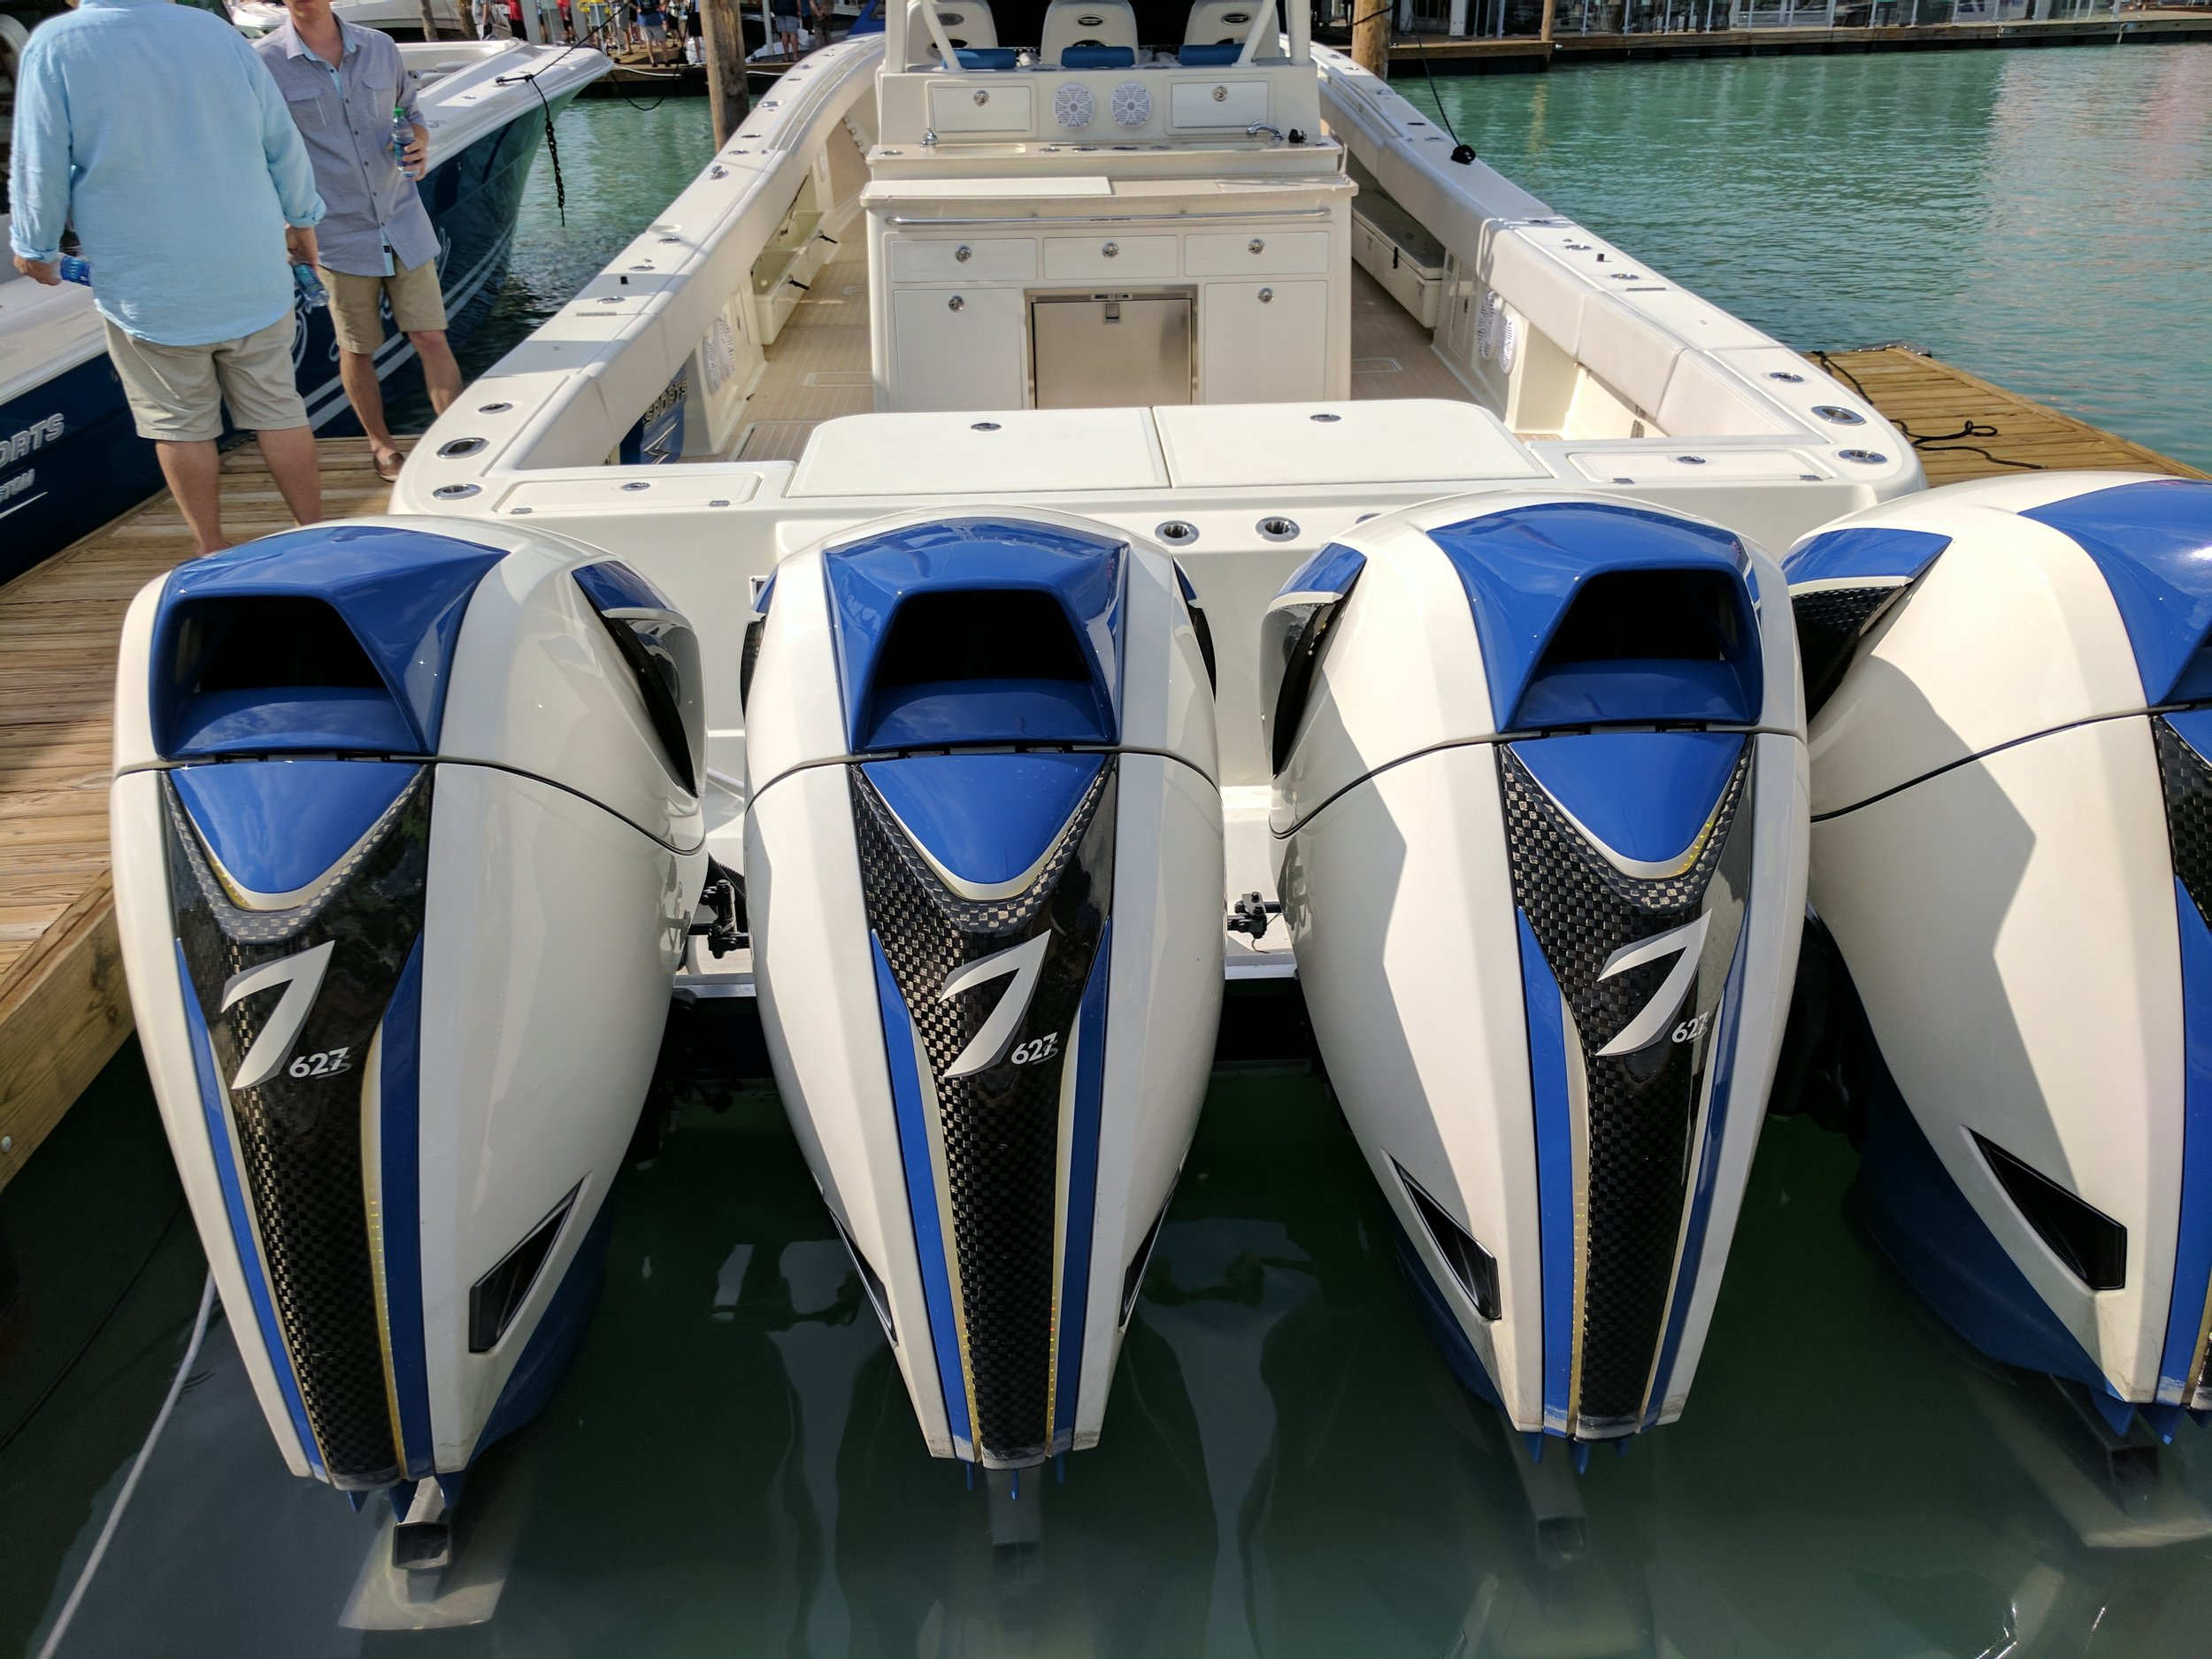 Silly, just silly. Beautiful design and incredible engineering from Seven Marine